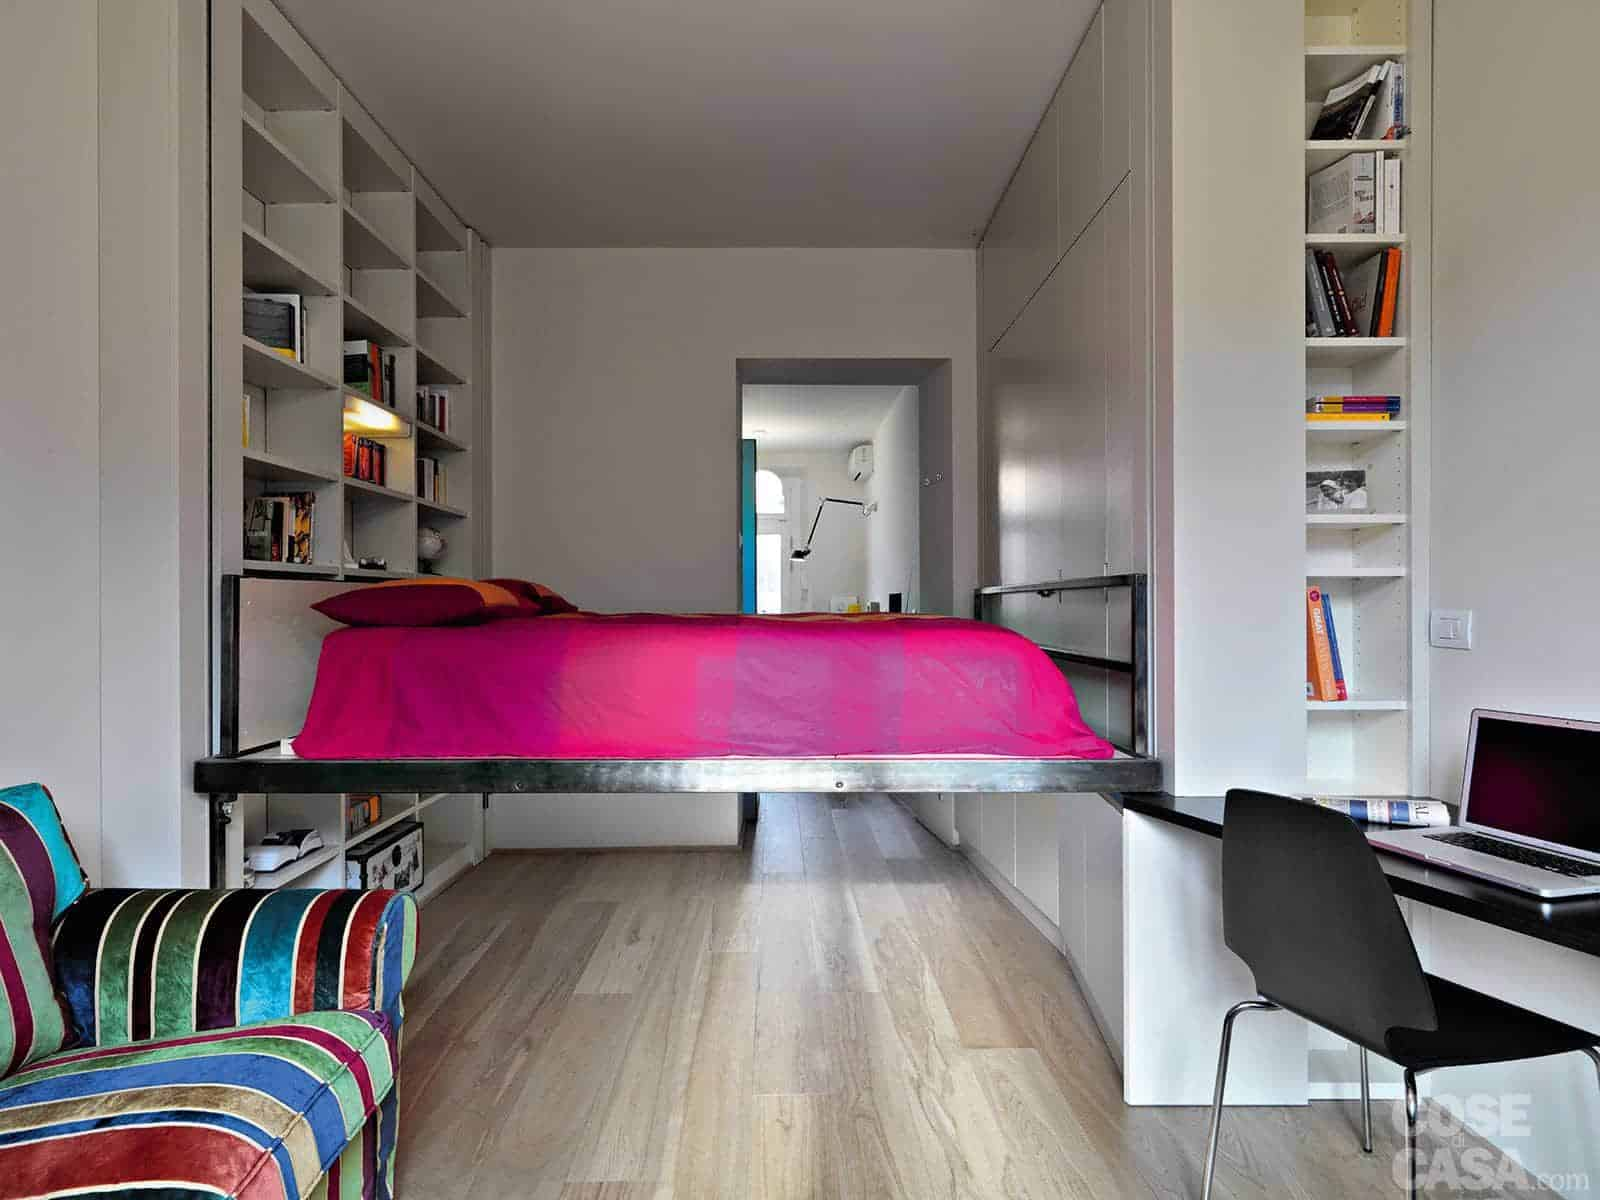 7 Clever Beds Make The Most Of Small Spaces